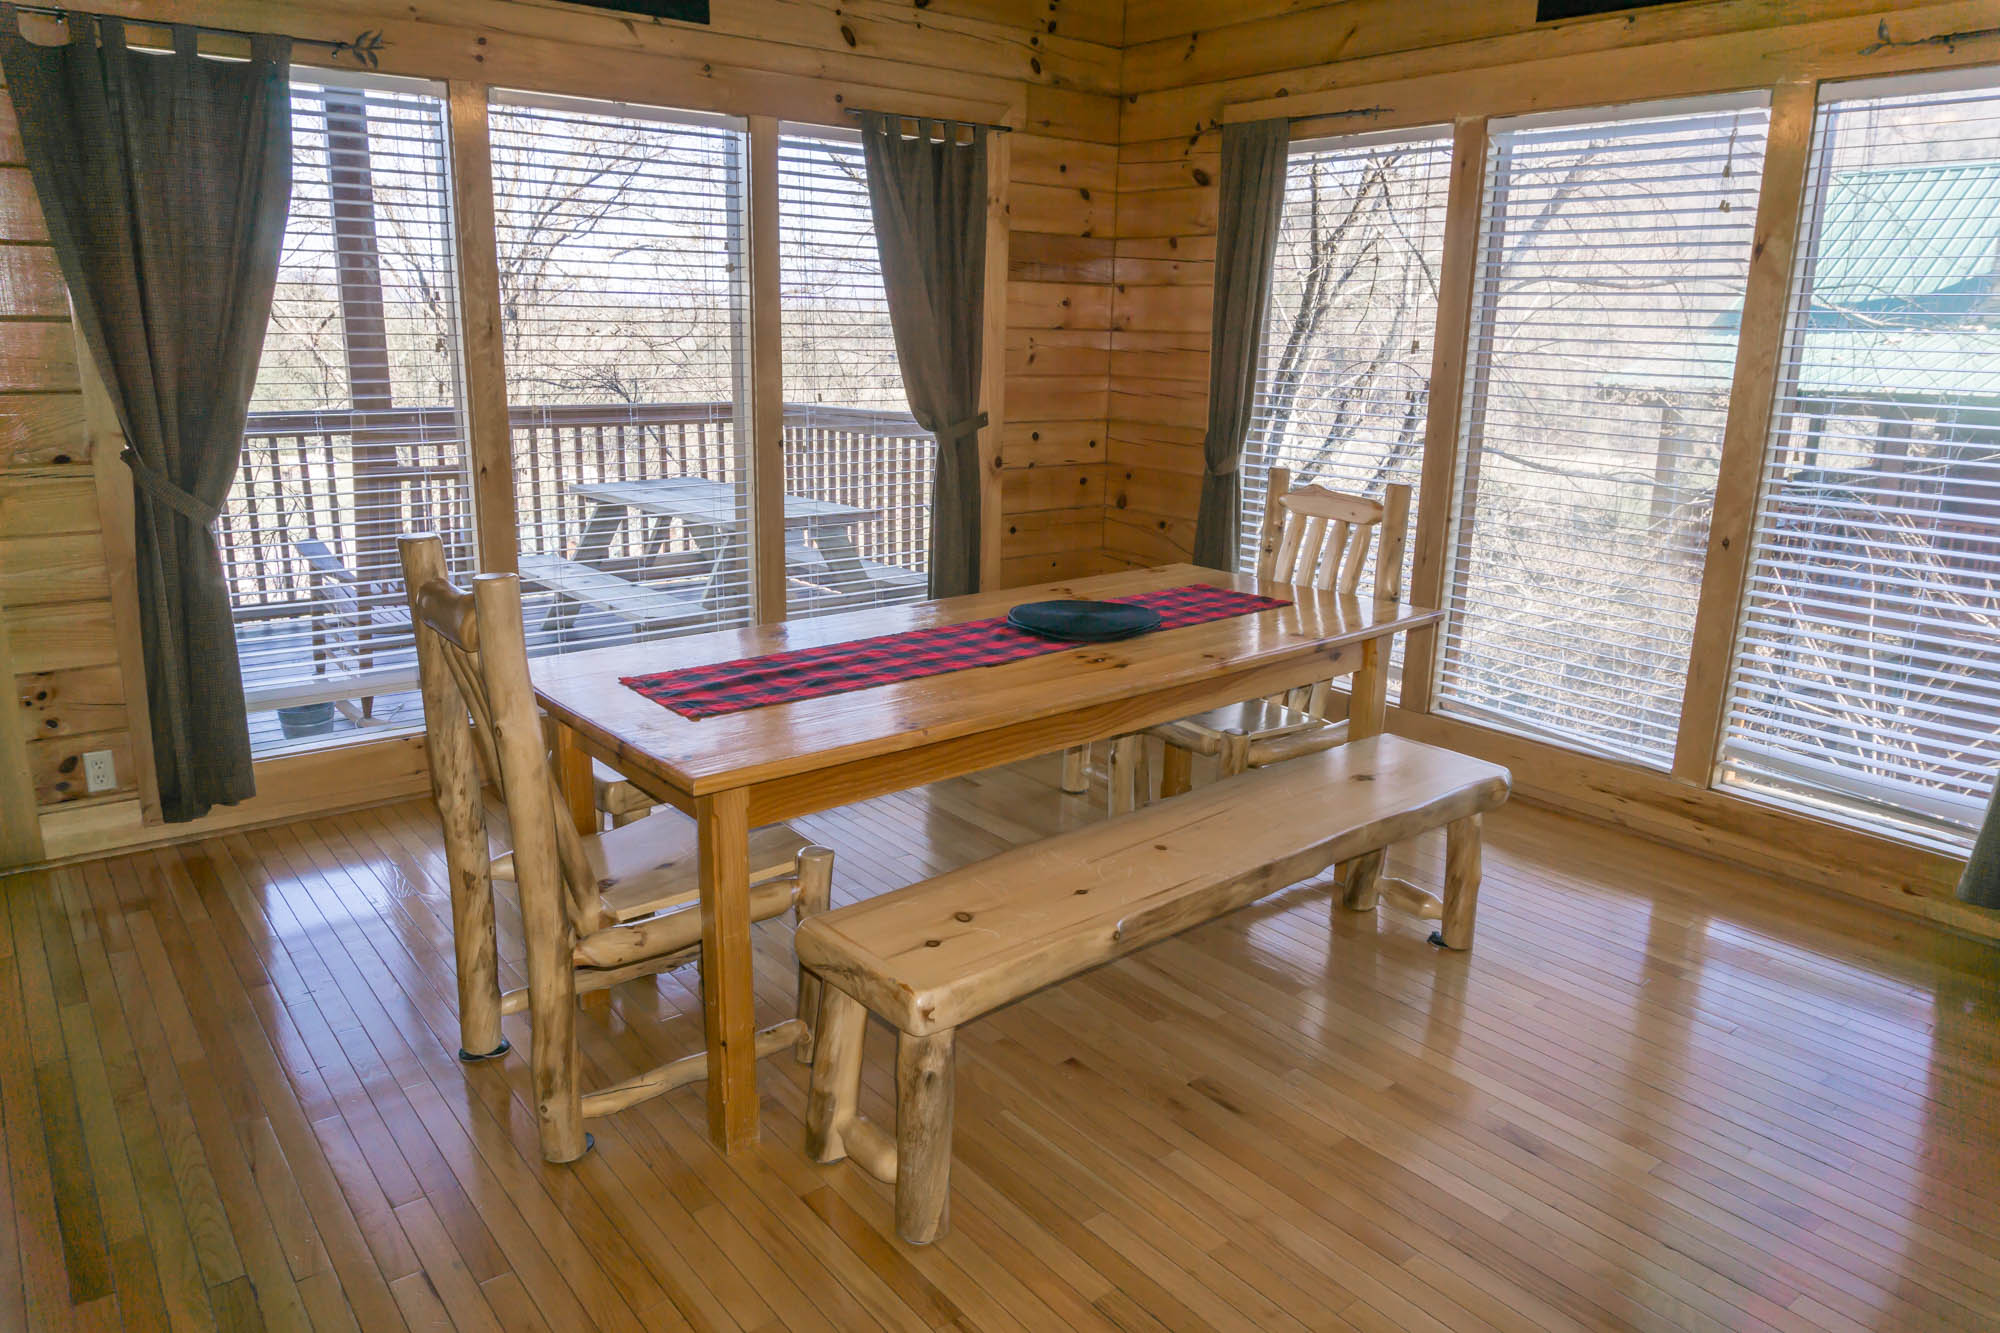 Dine in or sit out on the back deck picnic table